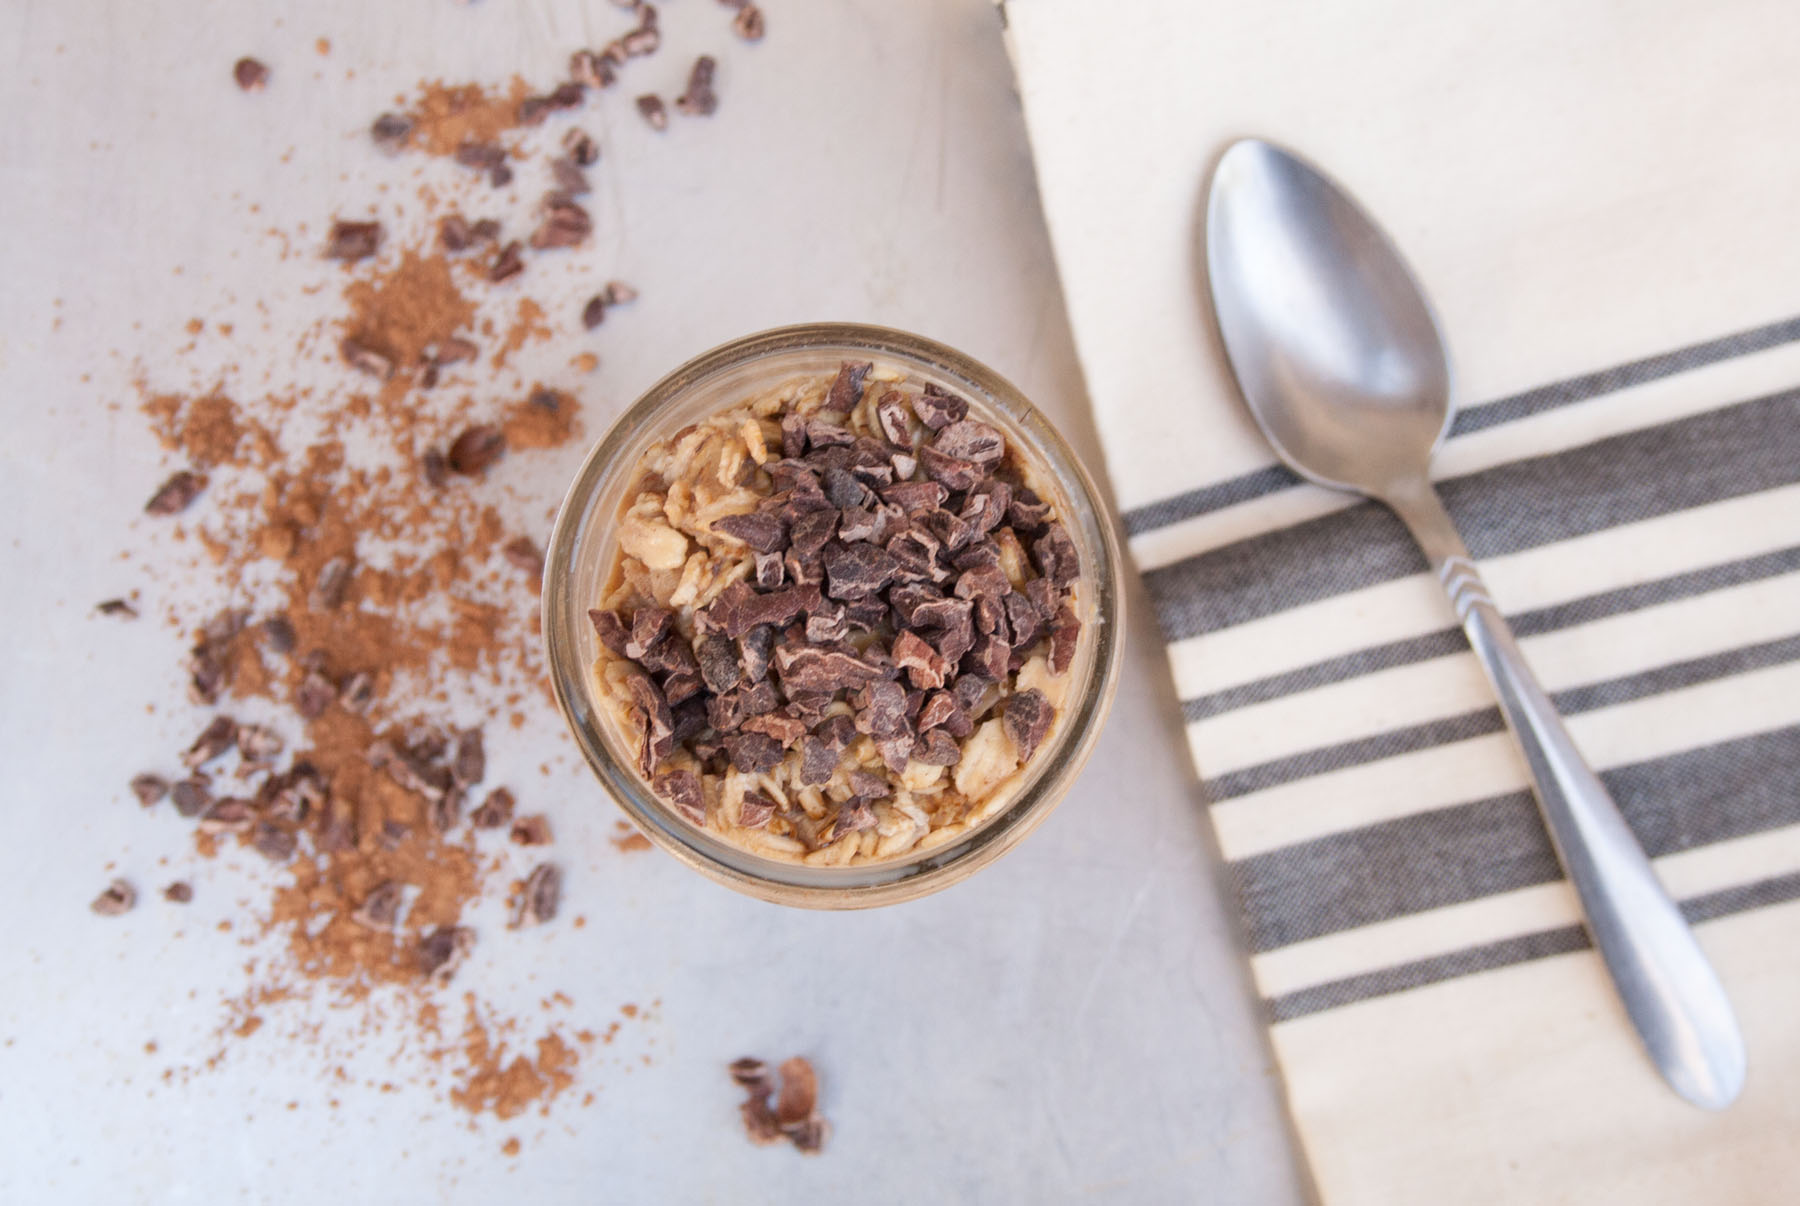 Chocolate Peanut Butter Overnight Oats horizontal birds eye view.